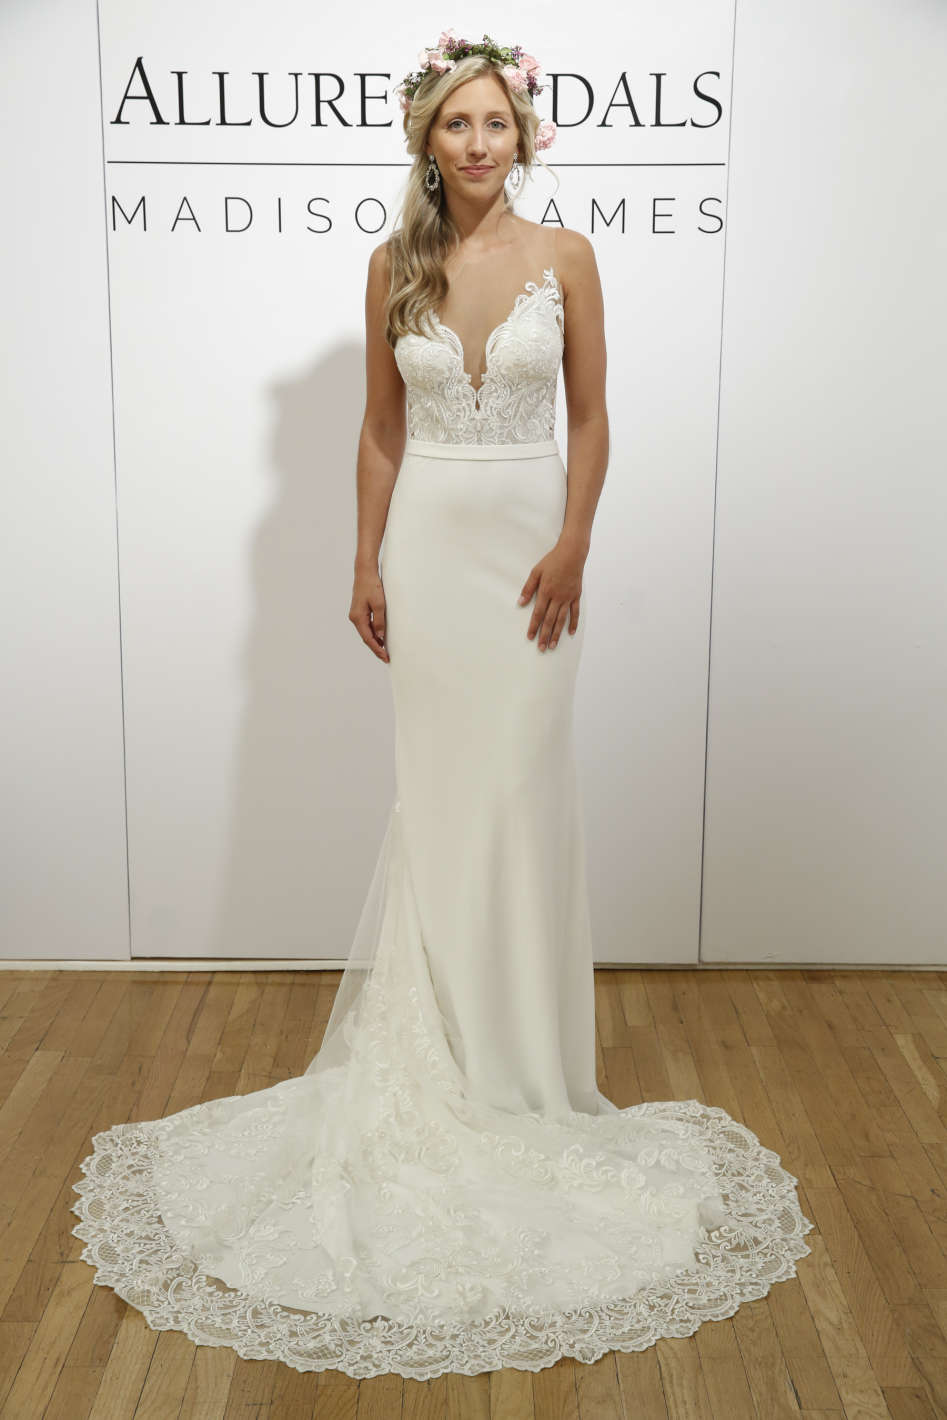 10 Amazing Wedding Dresses in Las Vegas | Getting Married in Vegas